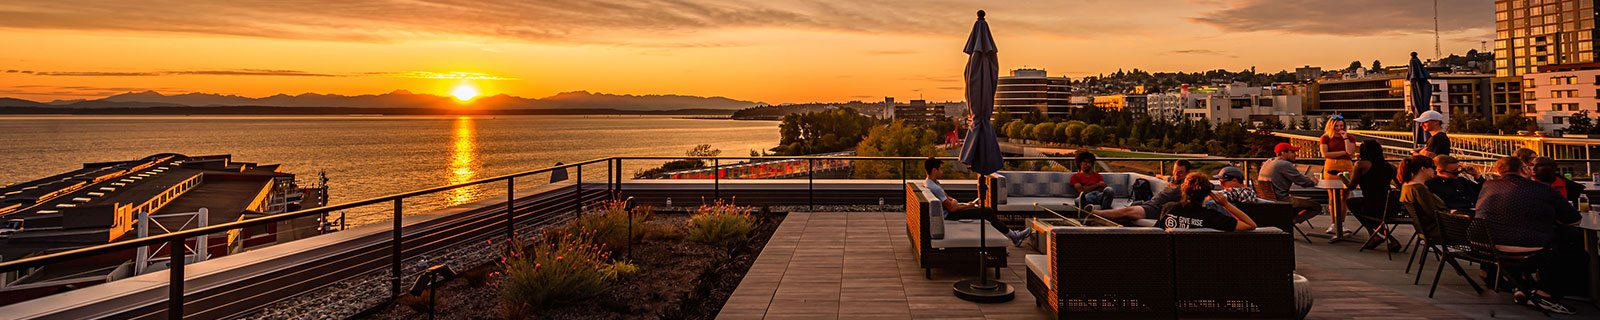 10 Clay Apartment's View of Sunset from Rooftop Terrace located in Seattle, Washington